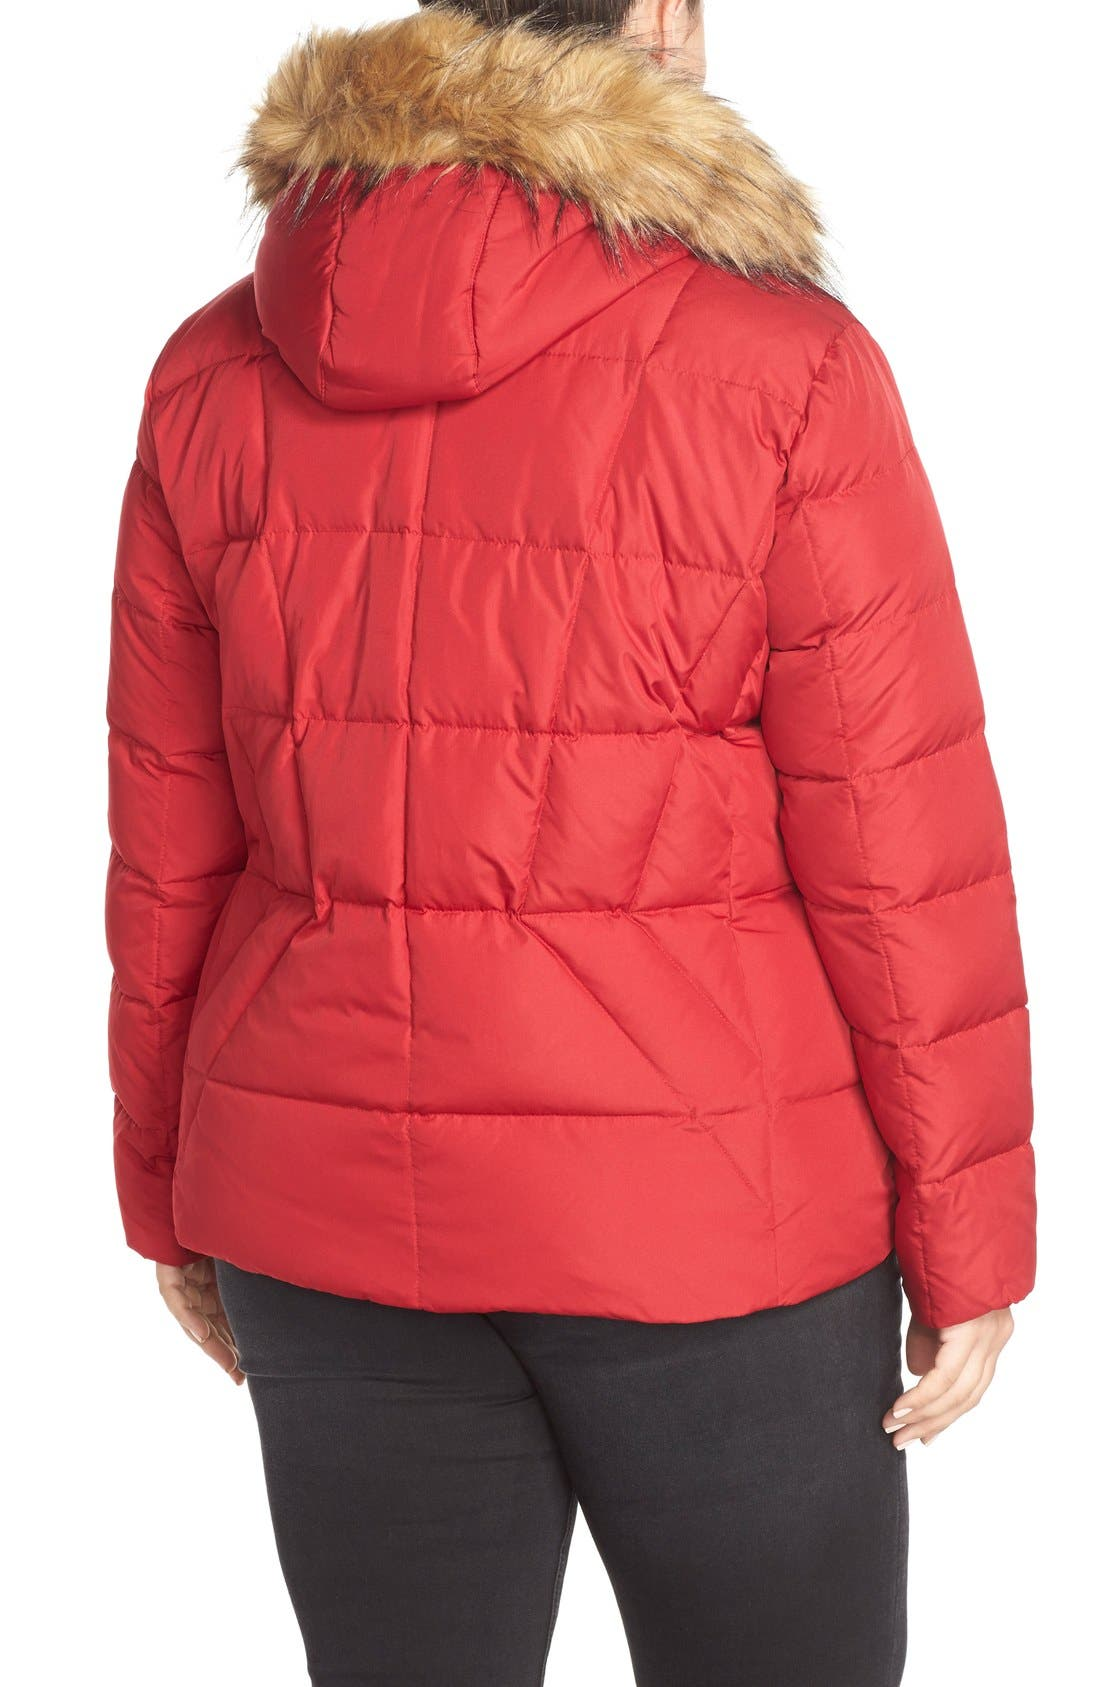 Alternate Image 2  - Calvin Klein Hooded Down & Feather Fill Jacket with Faux Fur Trim (Plus Size)